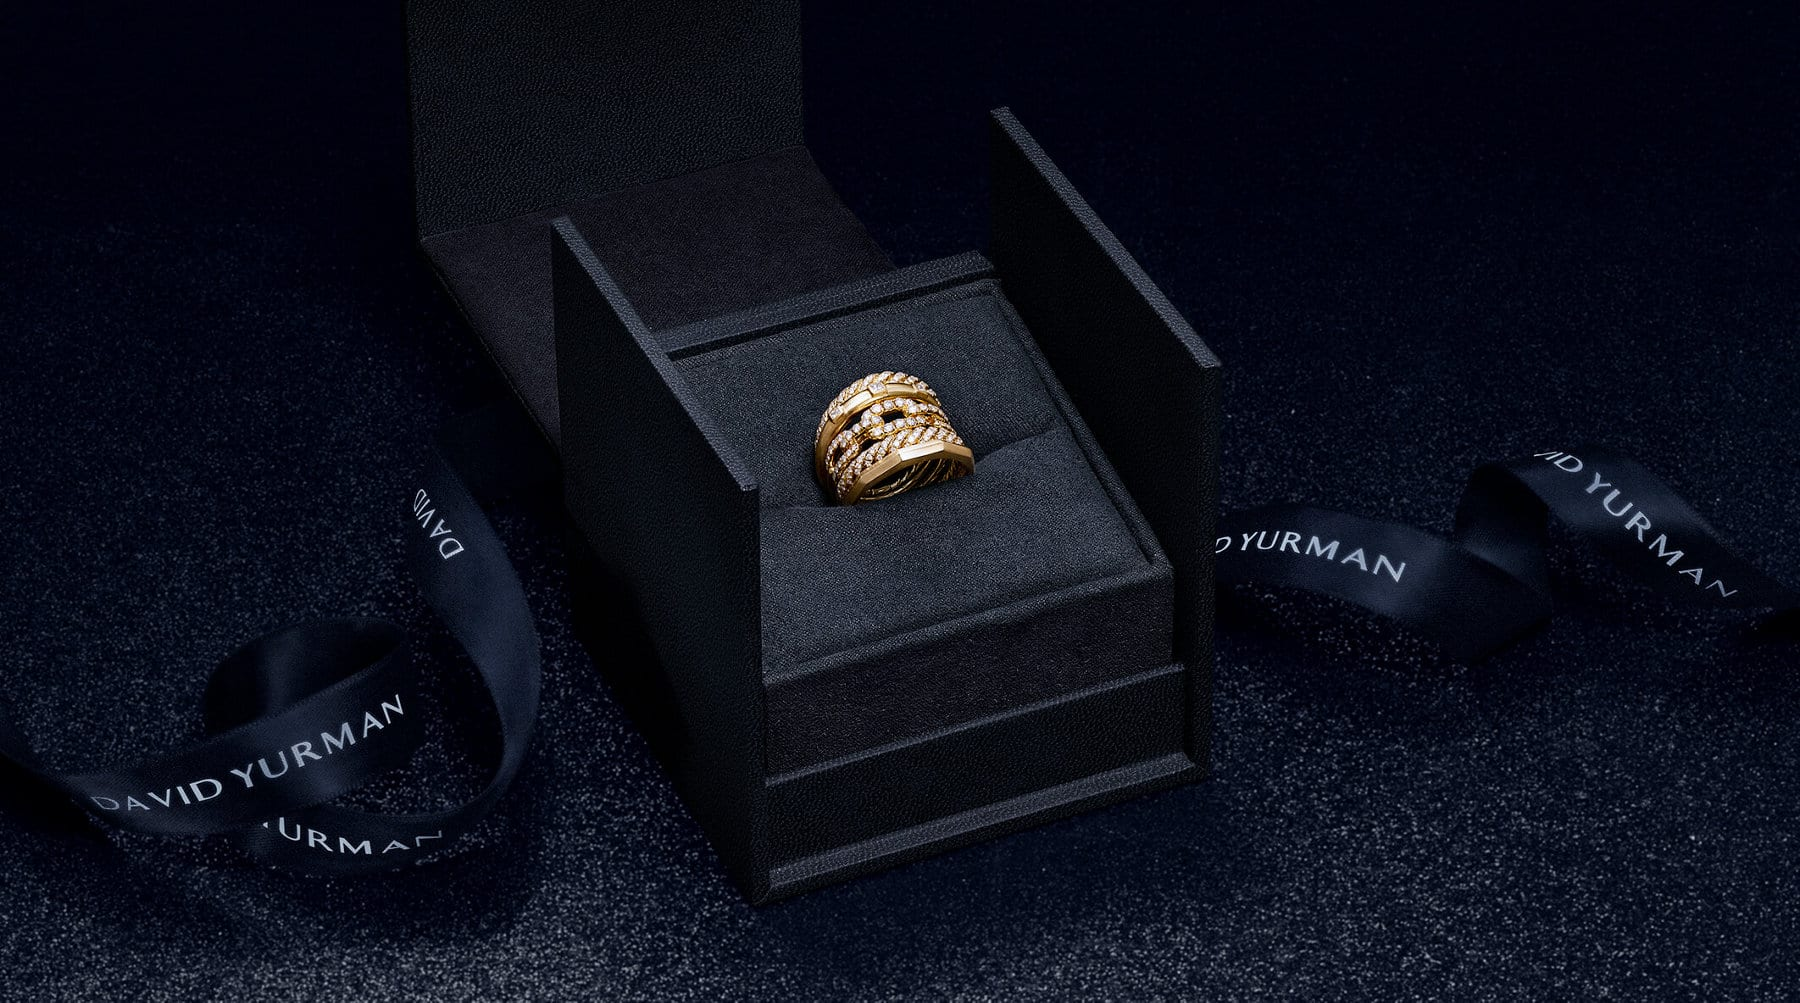 A color photo shows a black ring box open revealing a David Yurman women's Stax ring inside. Featuring the David Yurman logo printed in white, a winding black ribbon is placed next to the box on a glittery black surface. The ring is crafted from five rows of 18K yellow gold with pavé white diamonds, combining strands of Cable, faceted metal, link chain and smooth metal, creating the look of multiple rings stacked together.